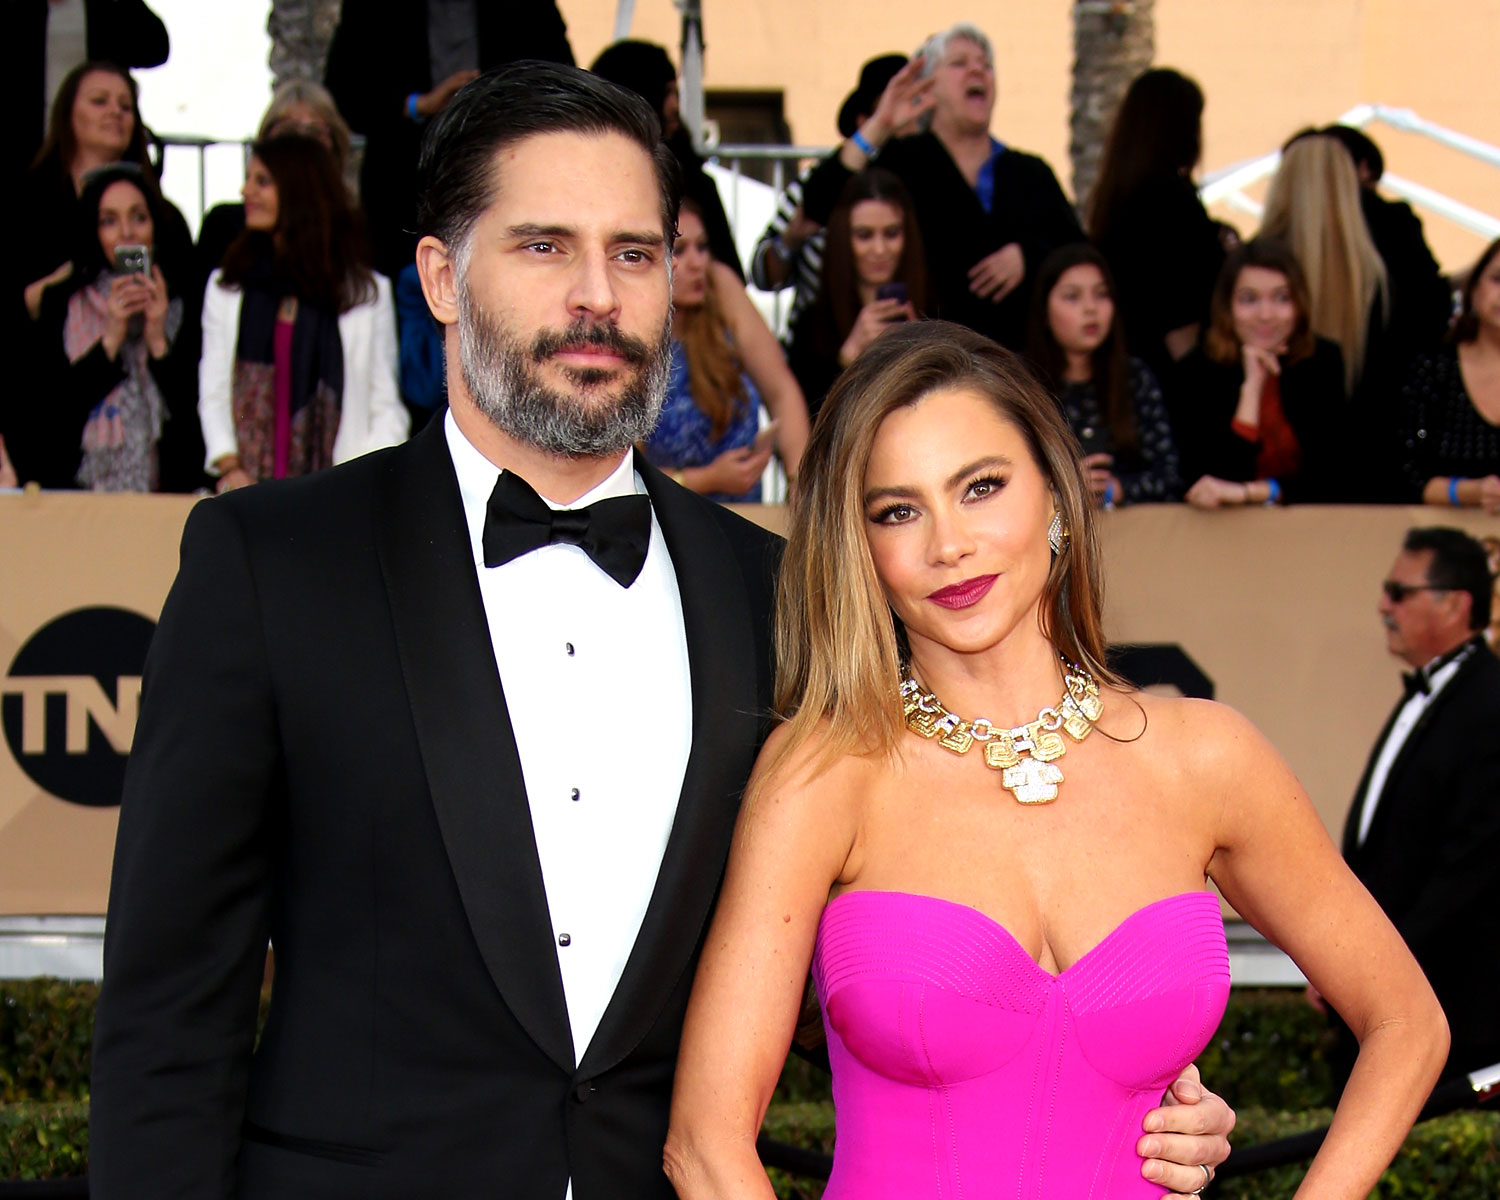 Sofia Vergara Wedding.Sofia Vergara Joe Manganiello Share Wedding Photos A Year Later